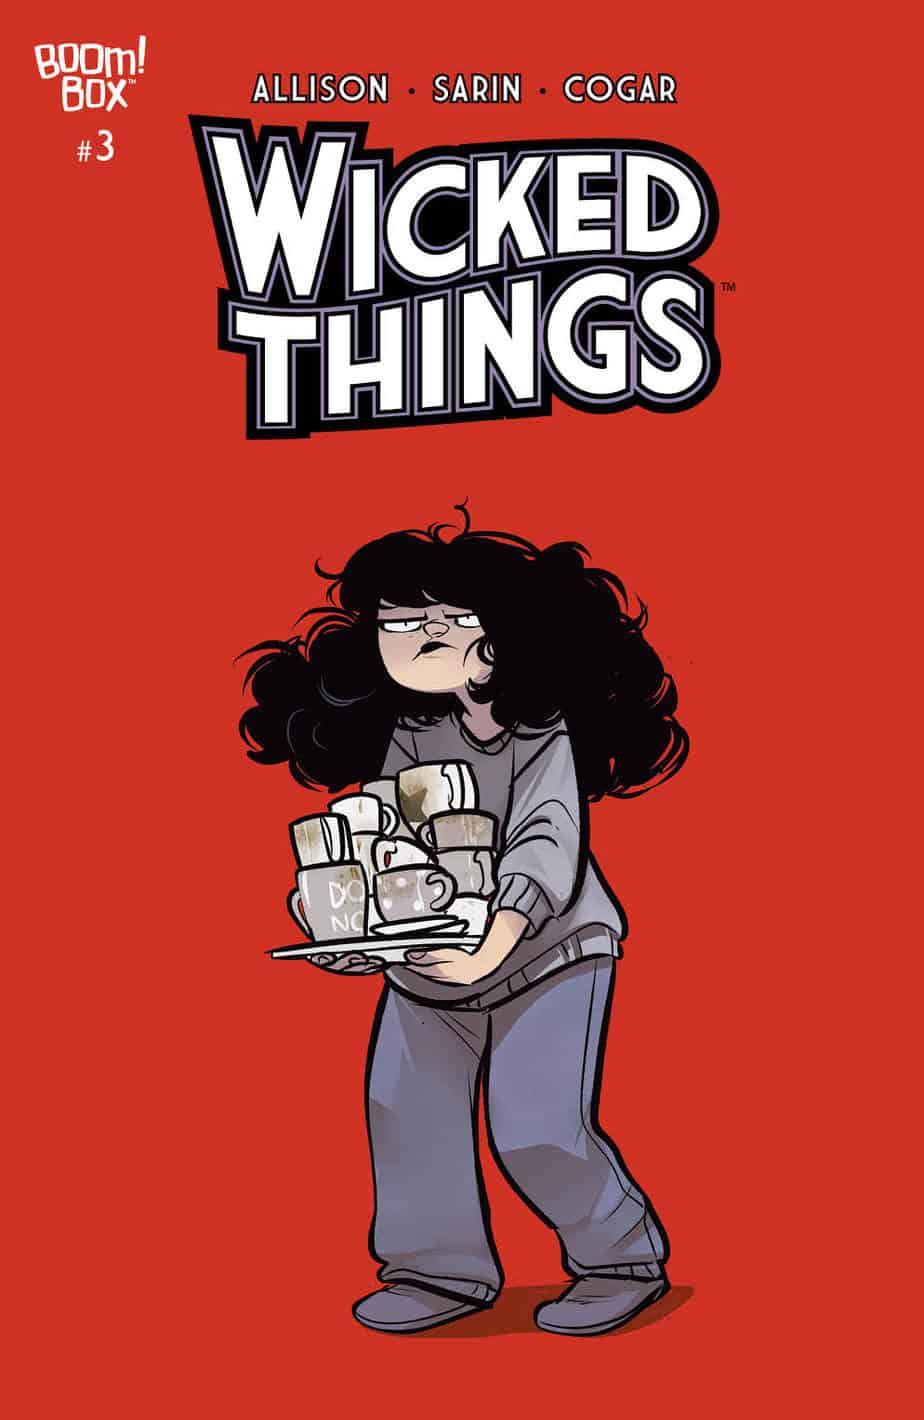 WICKED THINGS #3 - Main Cover